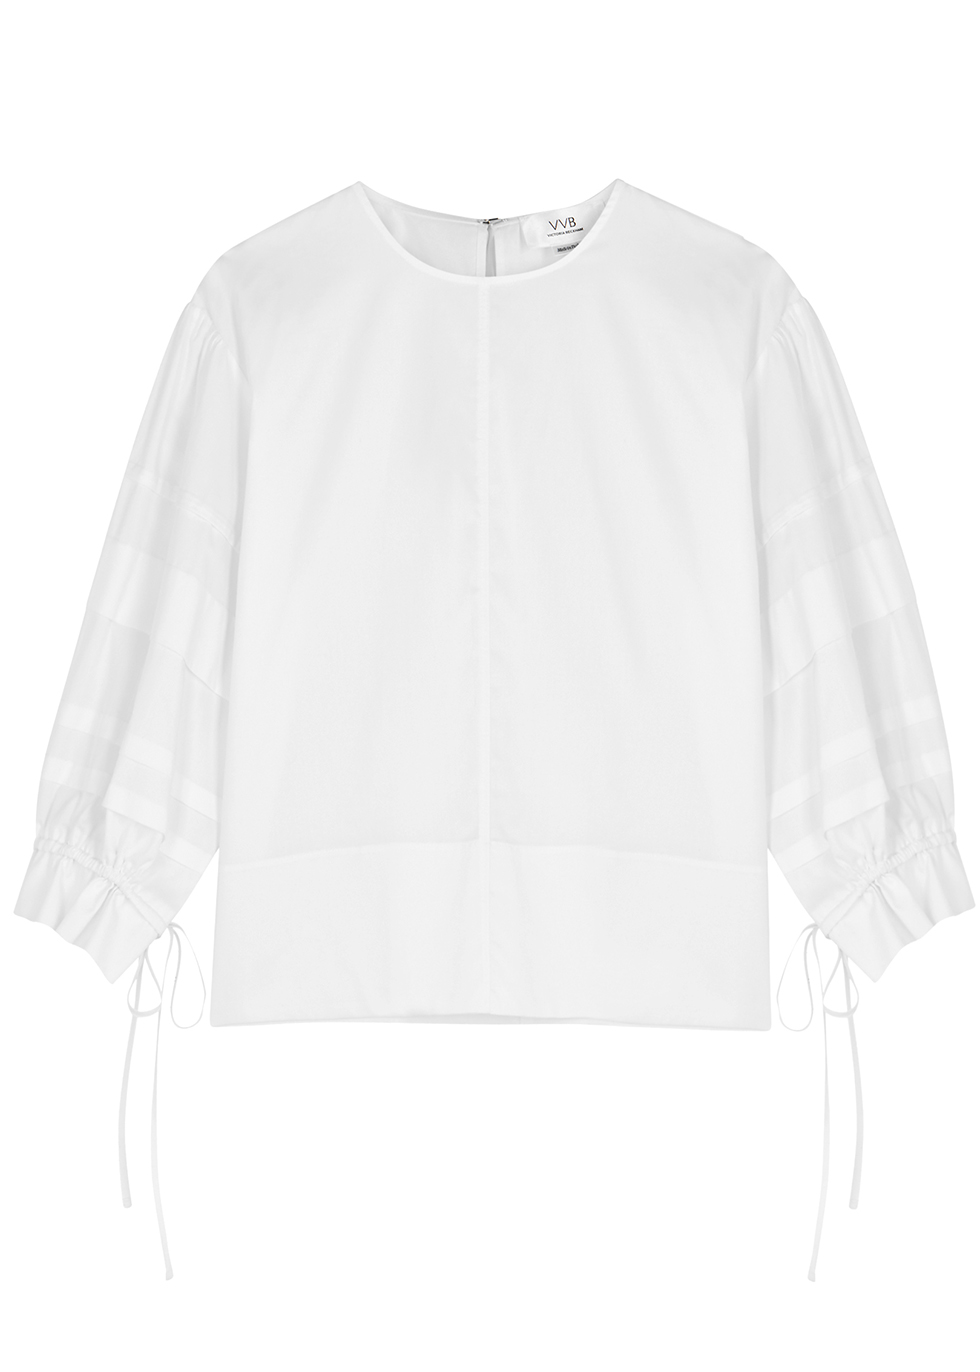 White pleated cotton top